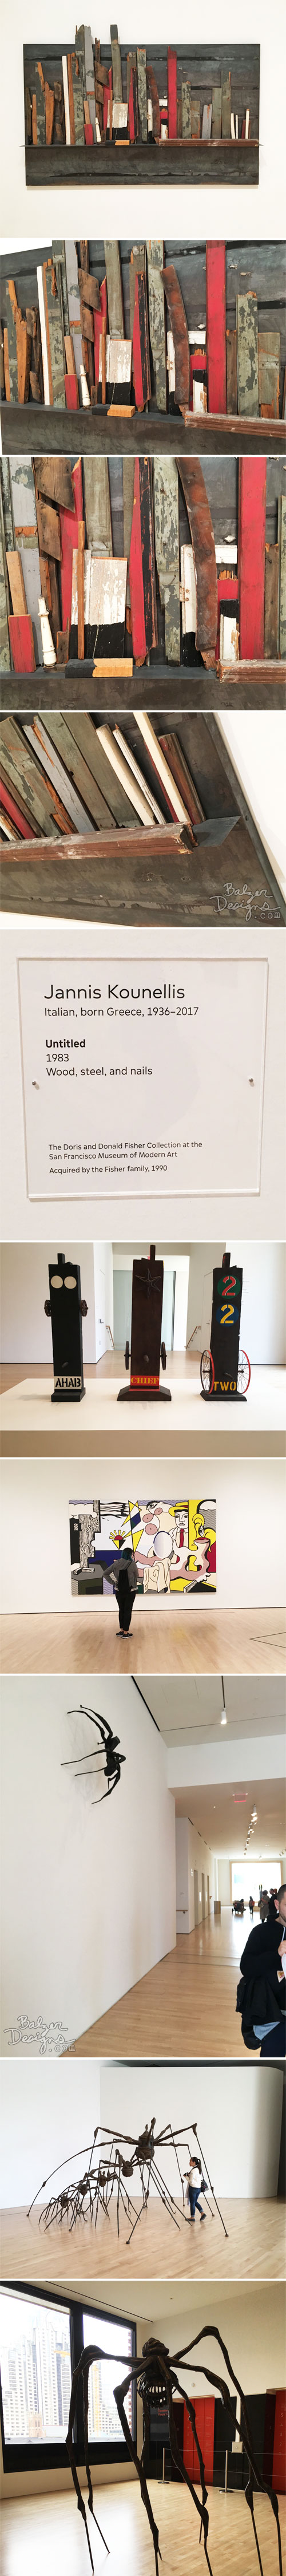 From the Balzer Designs Blog: An Hour at SFMoMA